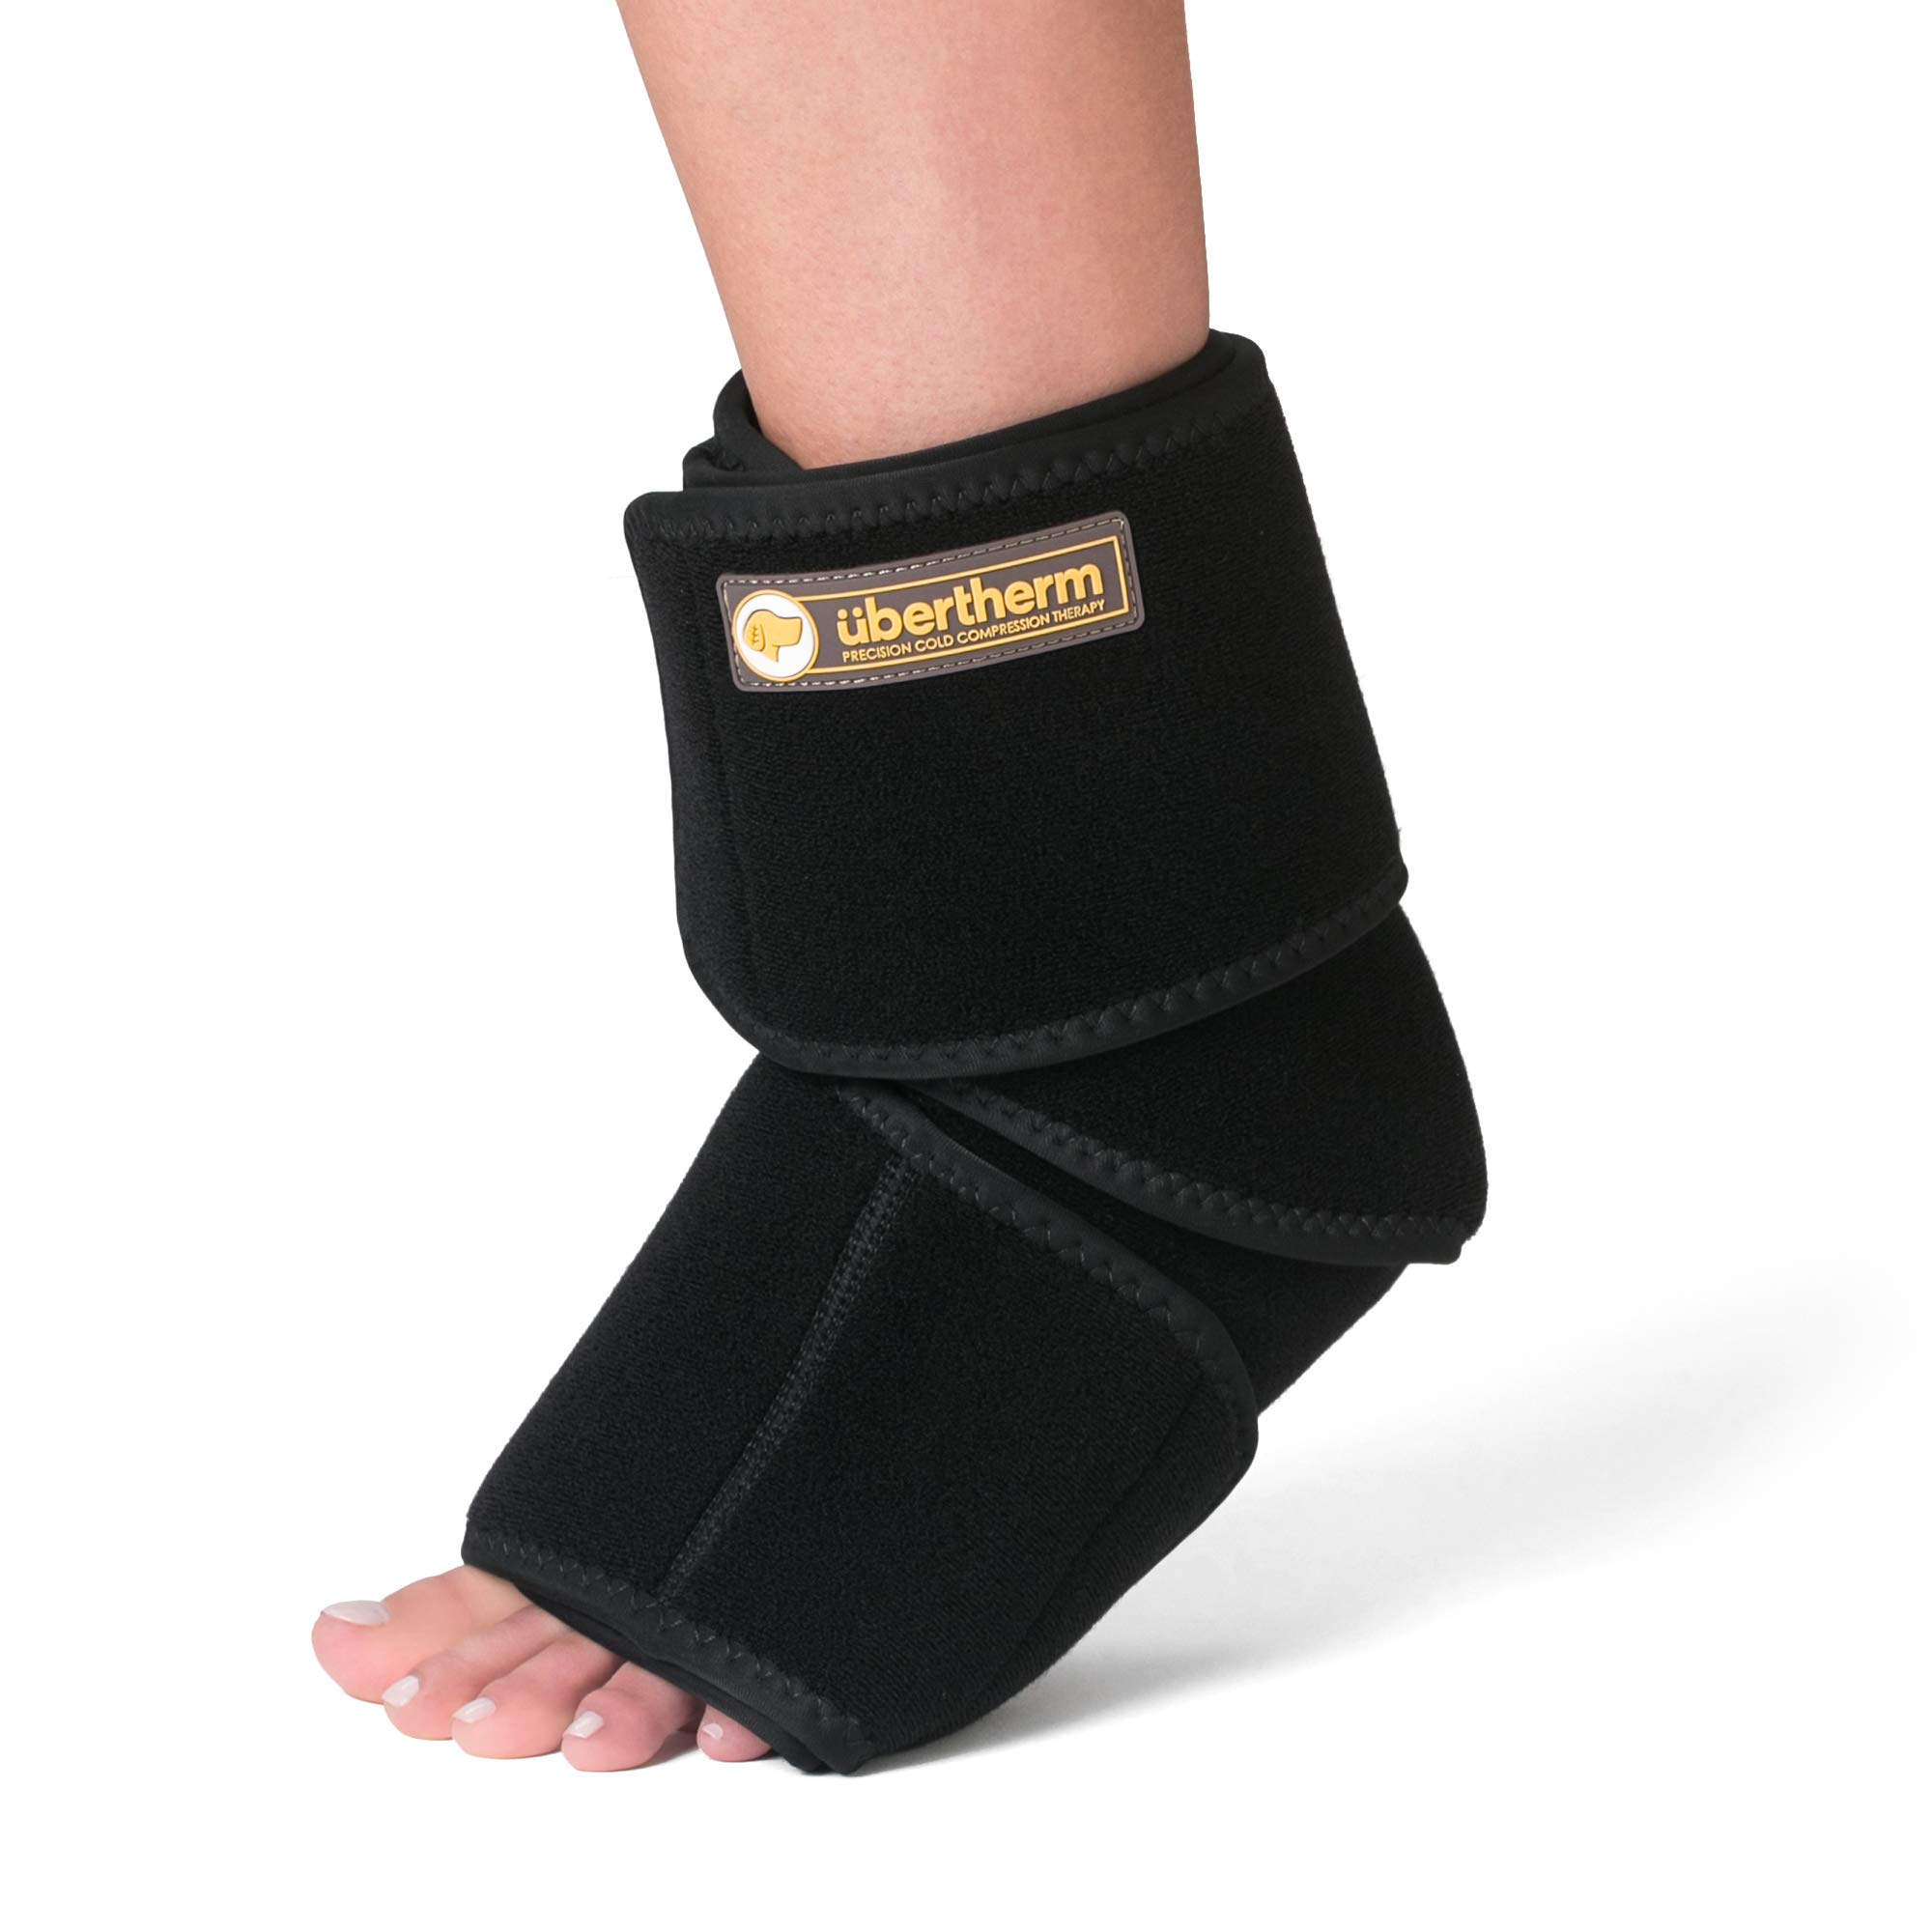 übertherm Foot/Ankle Pain Relief Cold Wrap. Heal Faster, Feel Better.